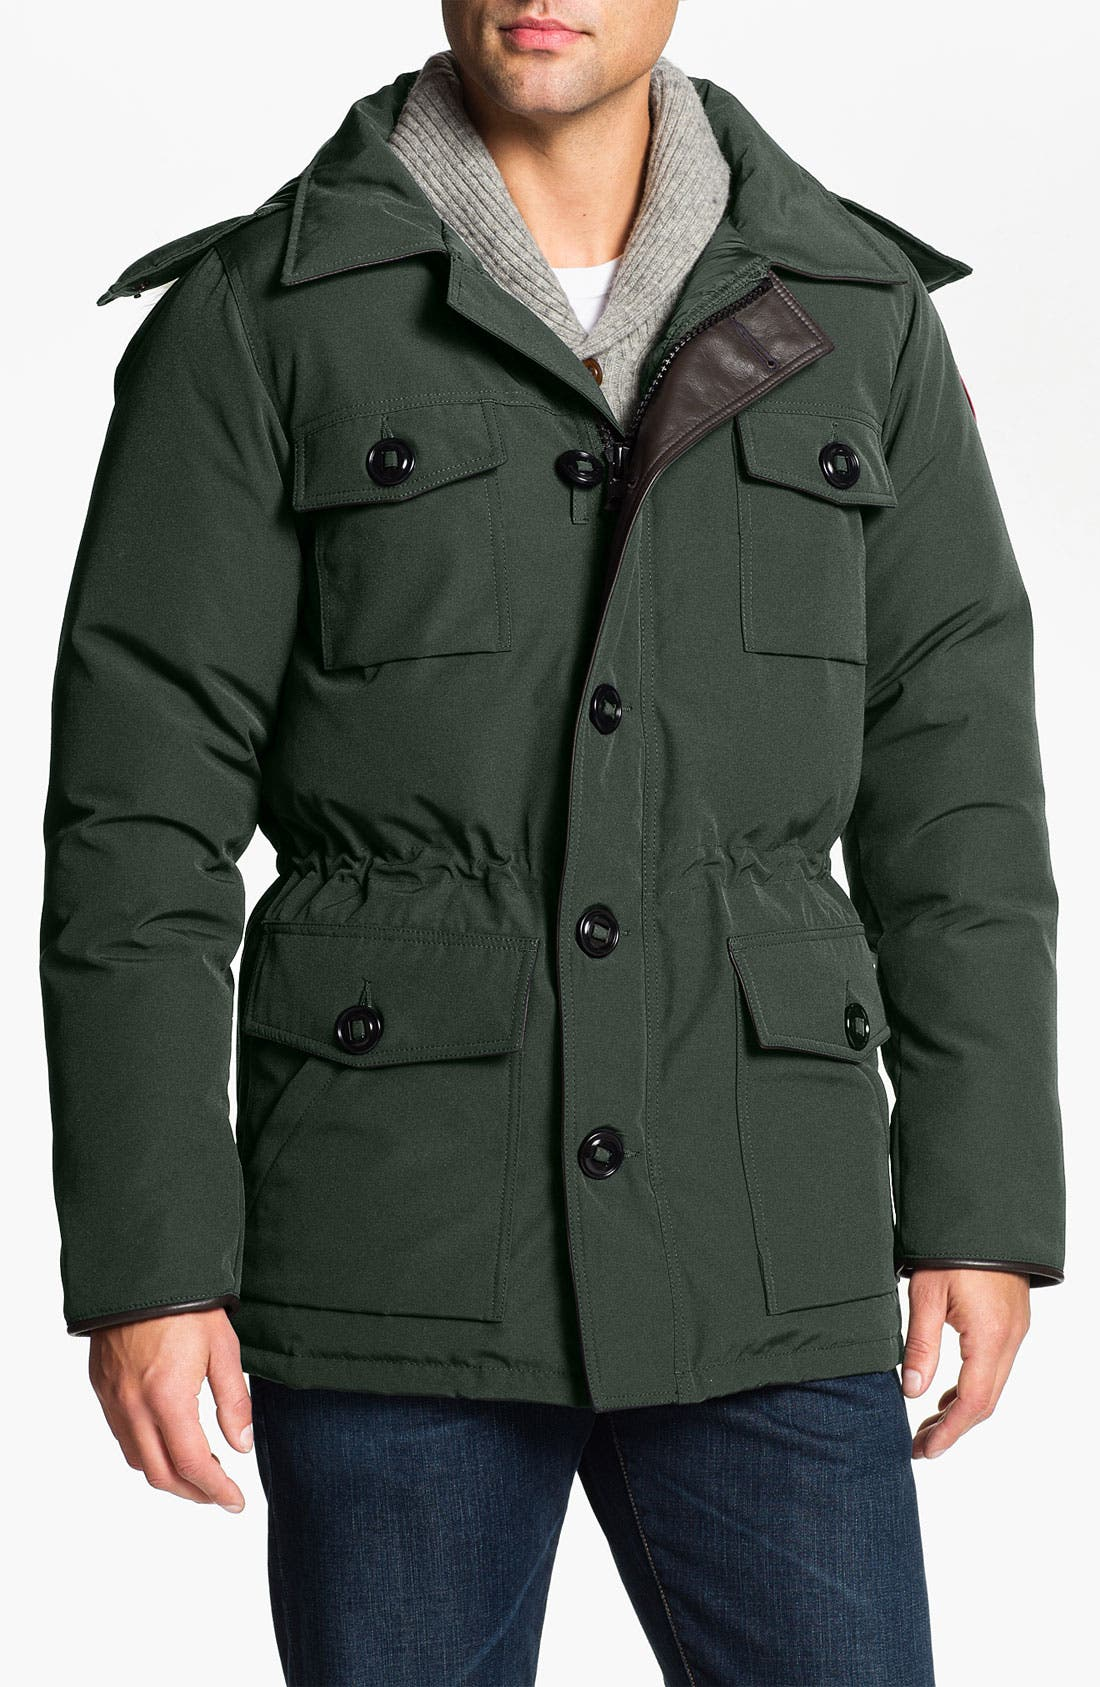 Alternate Image 1 Selected - Canada Goose 'Banff' Parka with Genuine Coyote Fur Trim